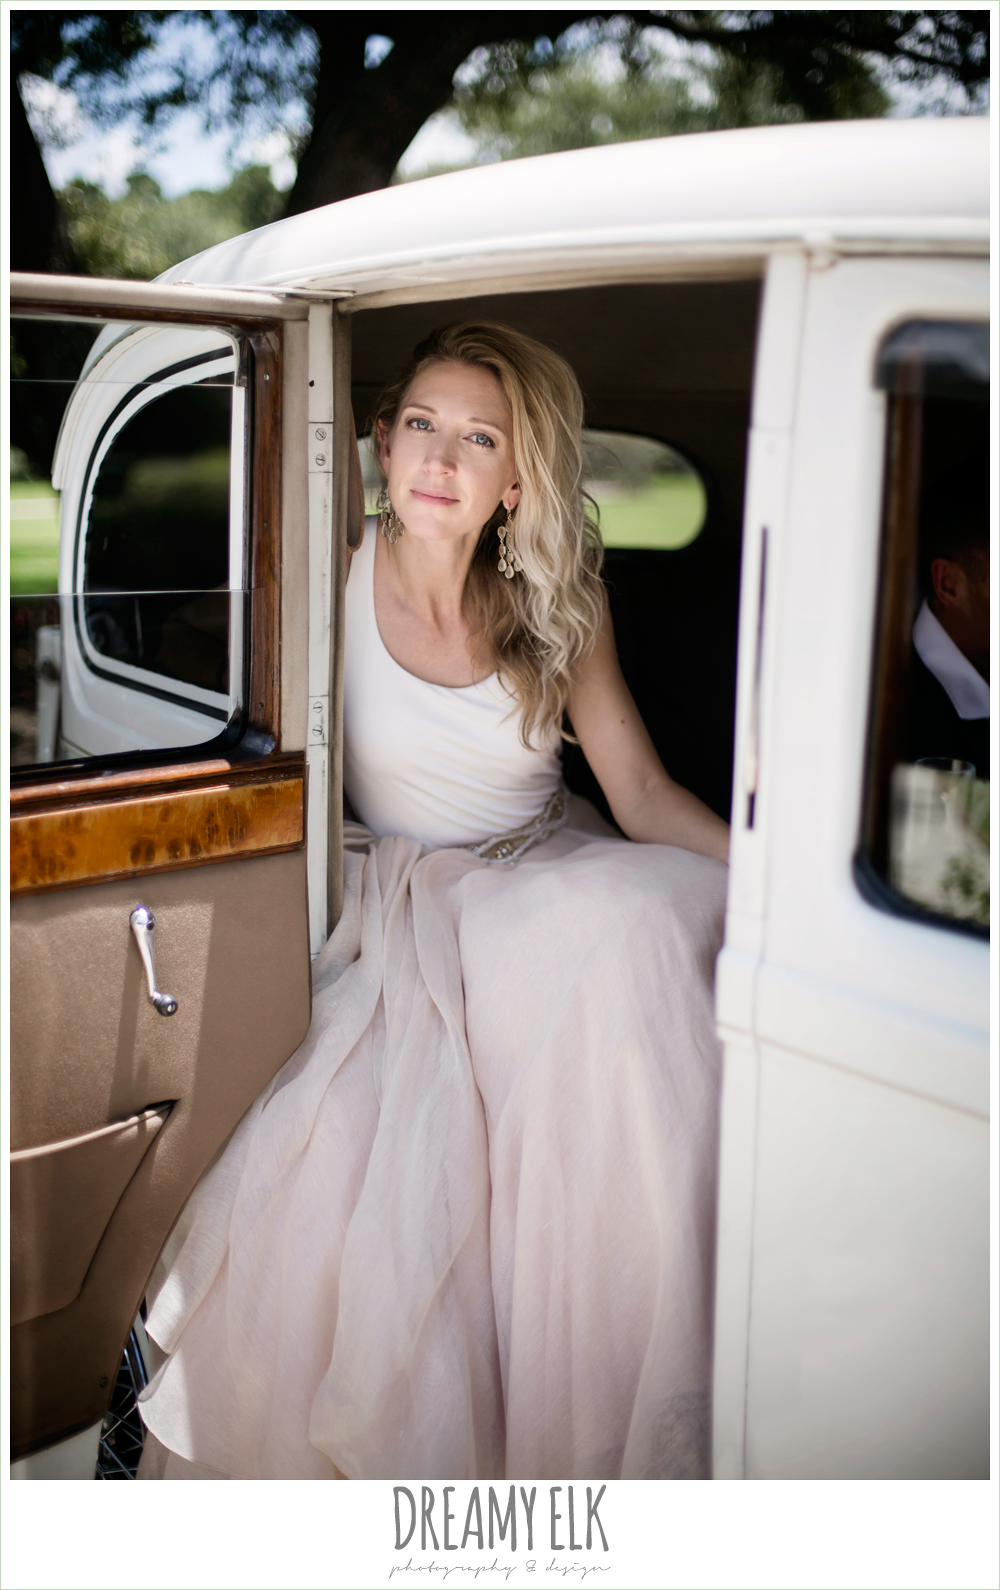 Monarch British Limousines, southern protocol bridal boutique, haute bride belt, carol hannah kensington halter and blush skirt, bride in rolls royce wedding getaway car, july summer morning wedding, ashelynn manor, magnolia, texas {dreamy elk photography and design} photo